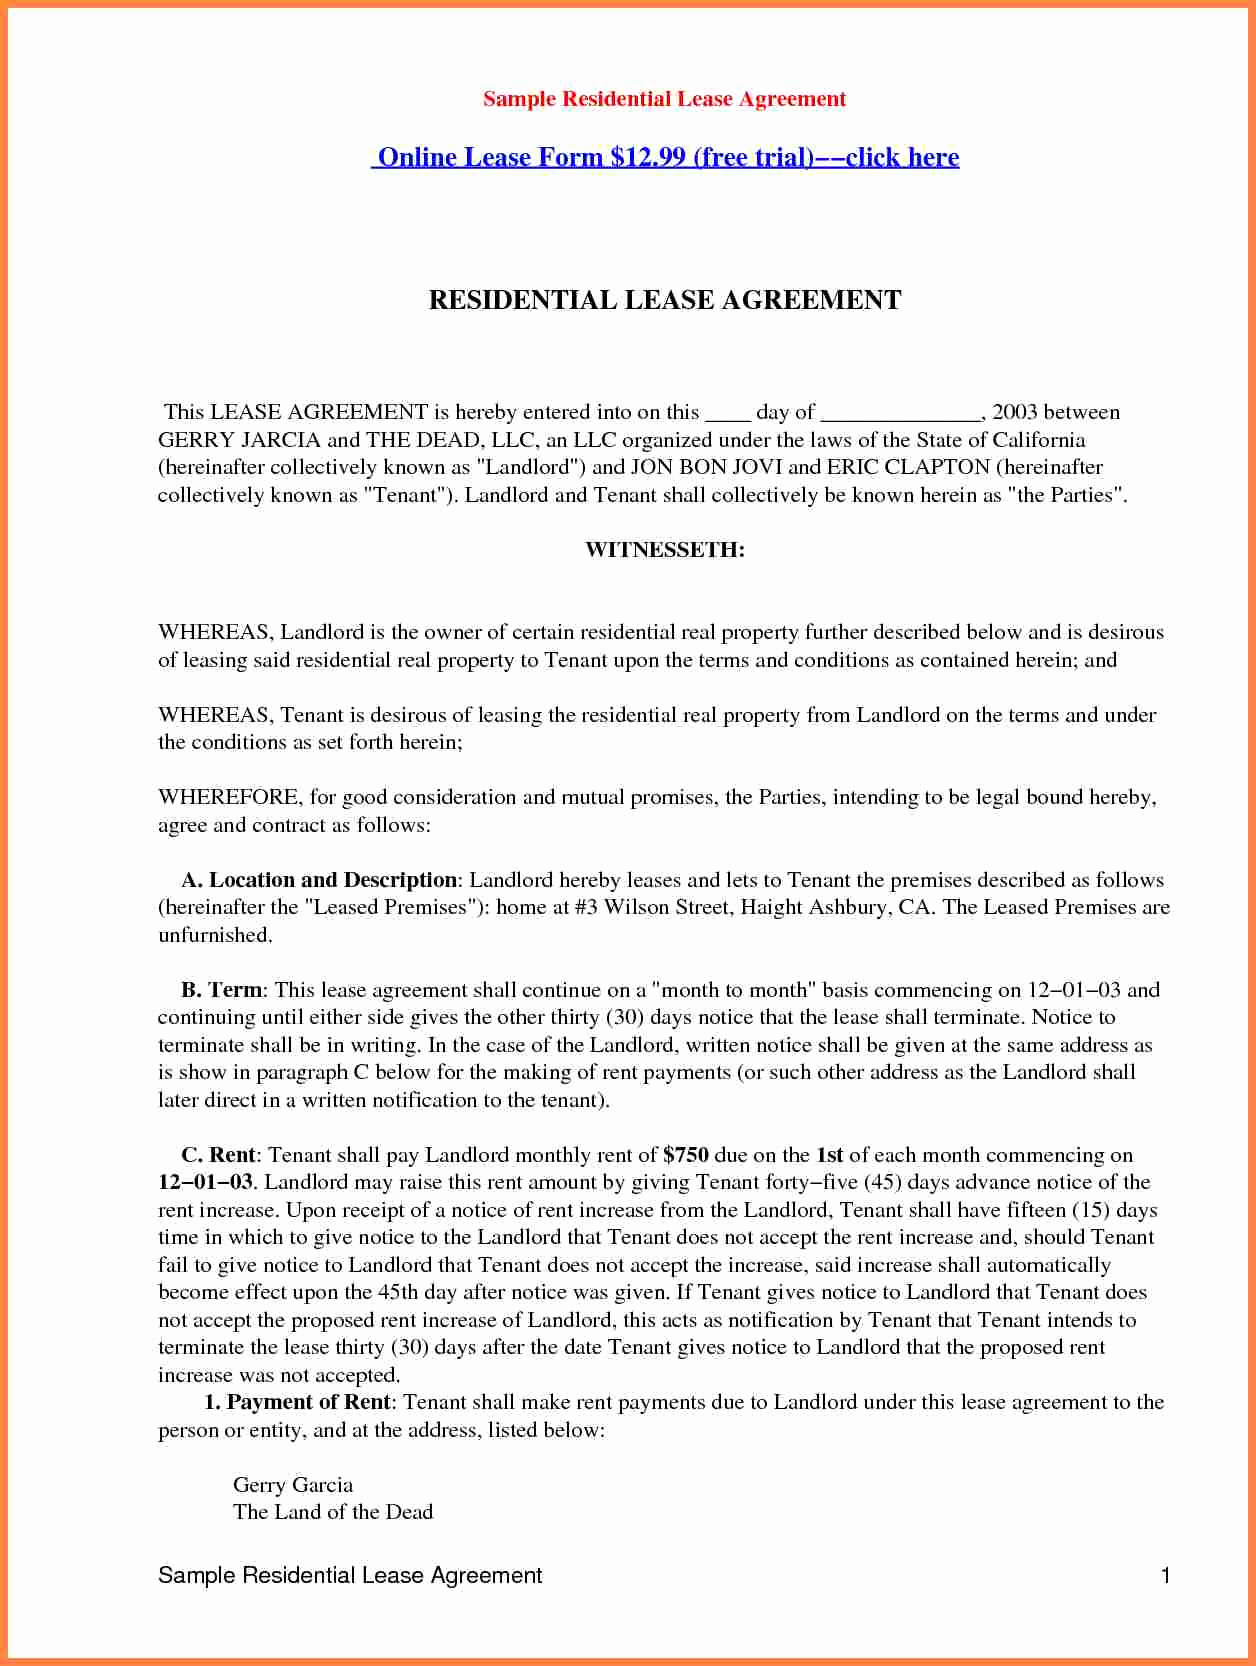 Sample Residential Lease Agreement Beautiful 7 Residential Property Lease Agreement Template